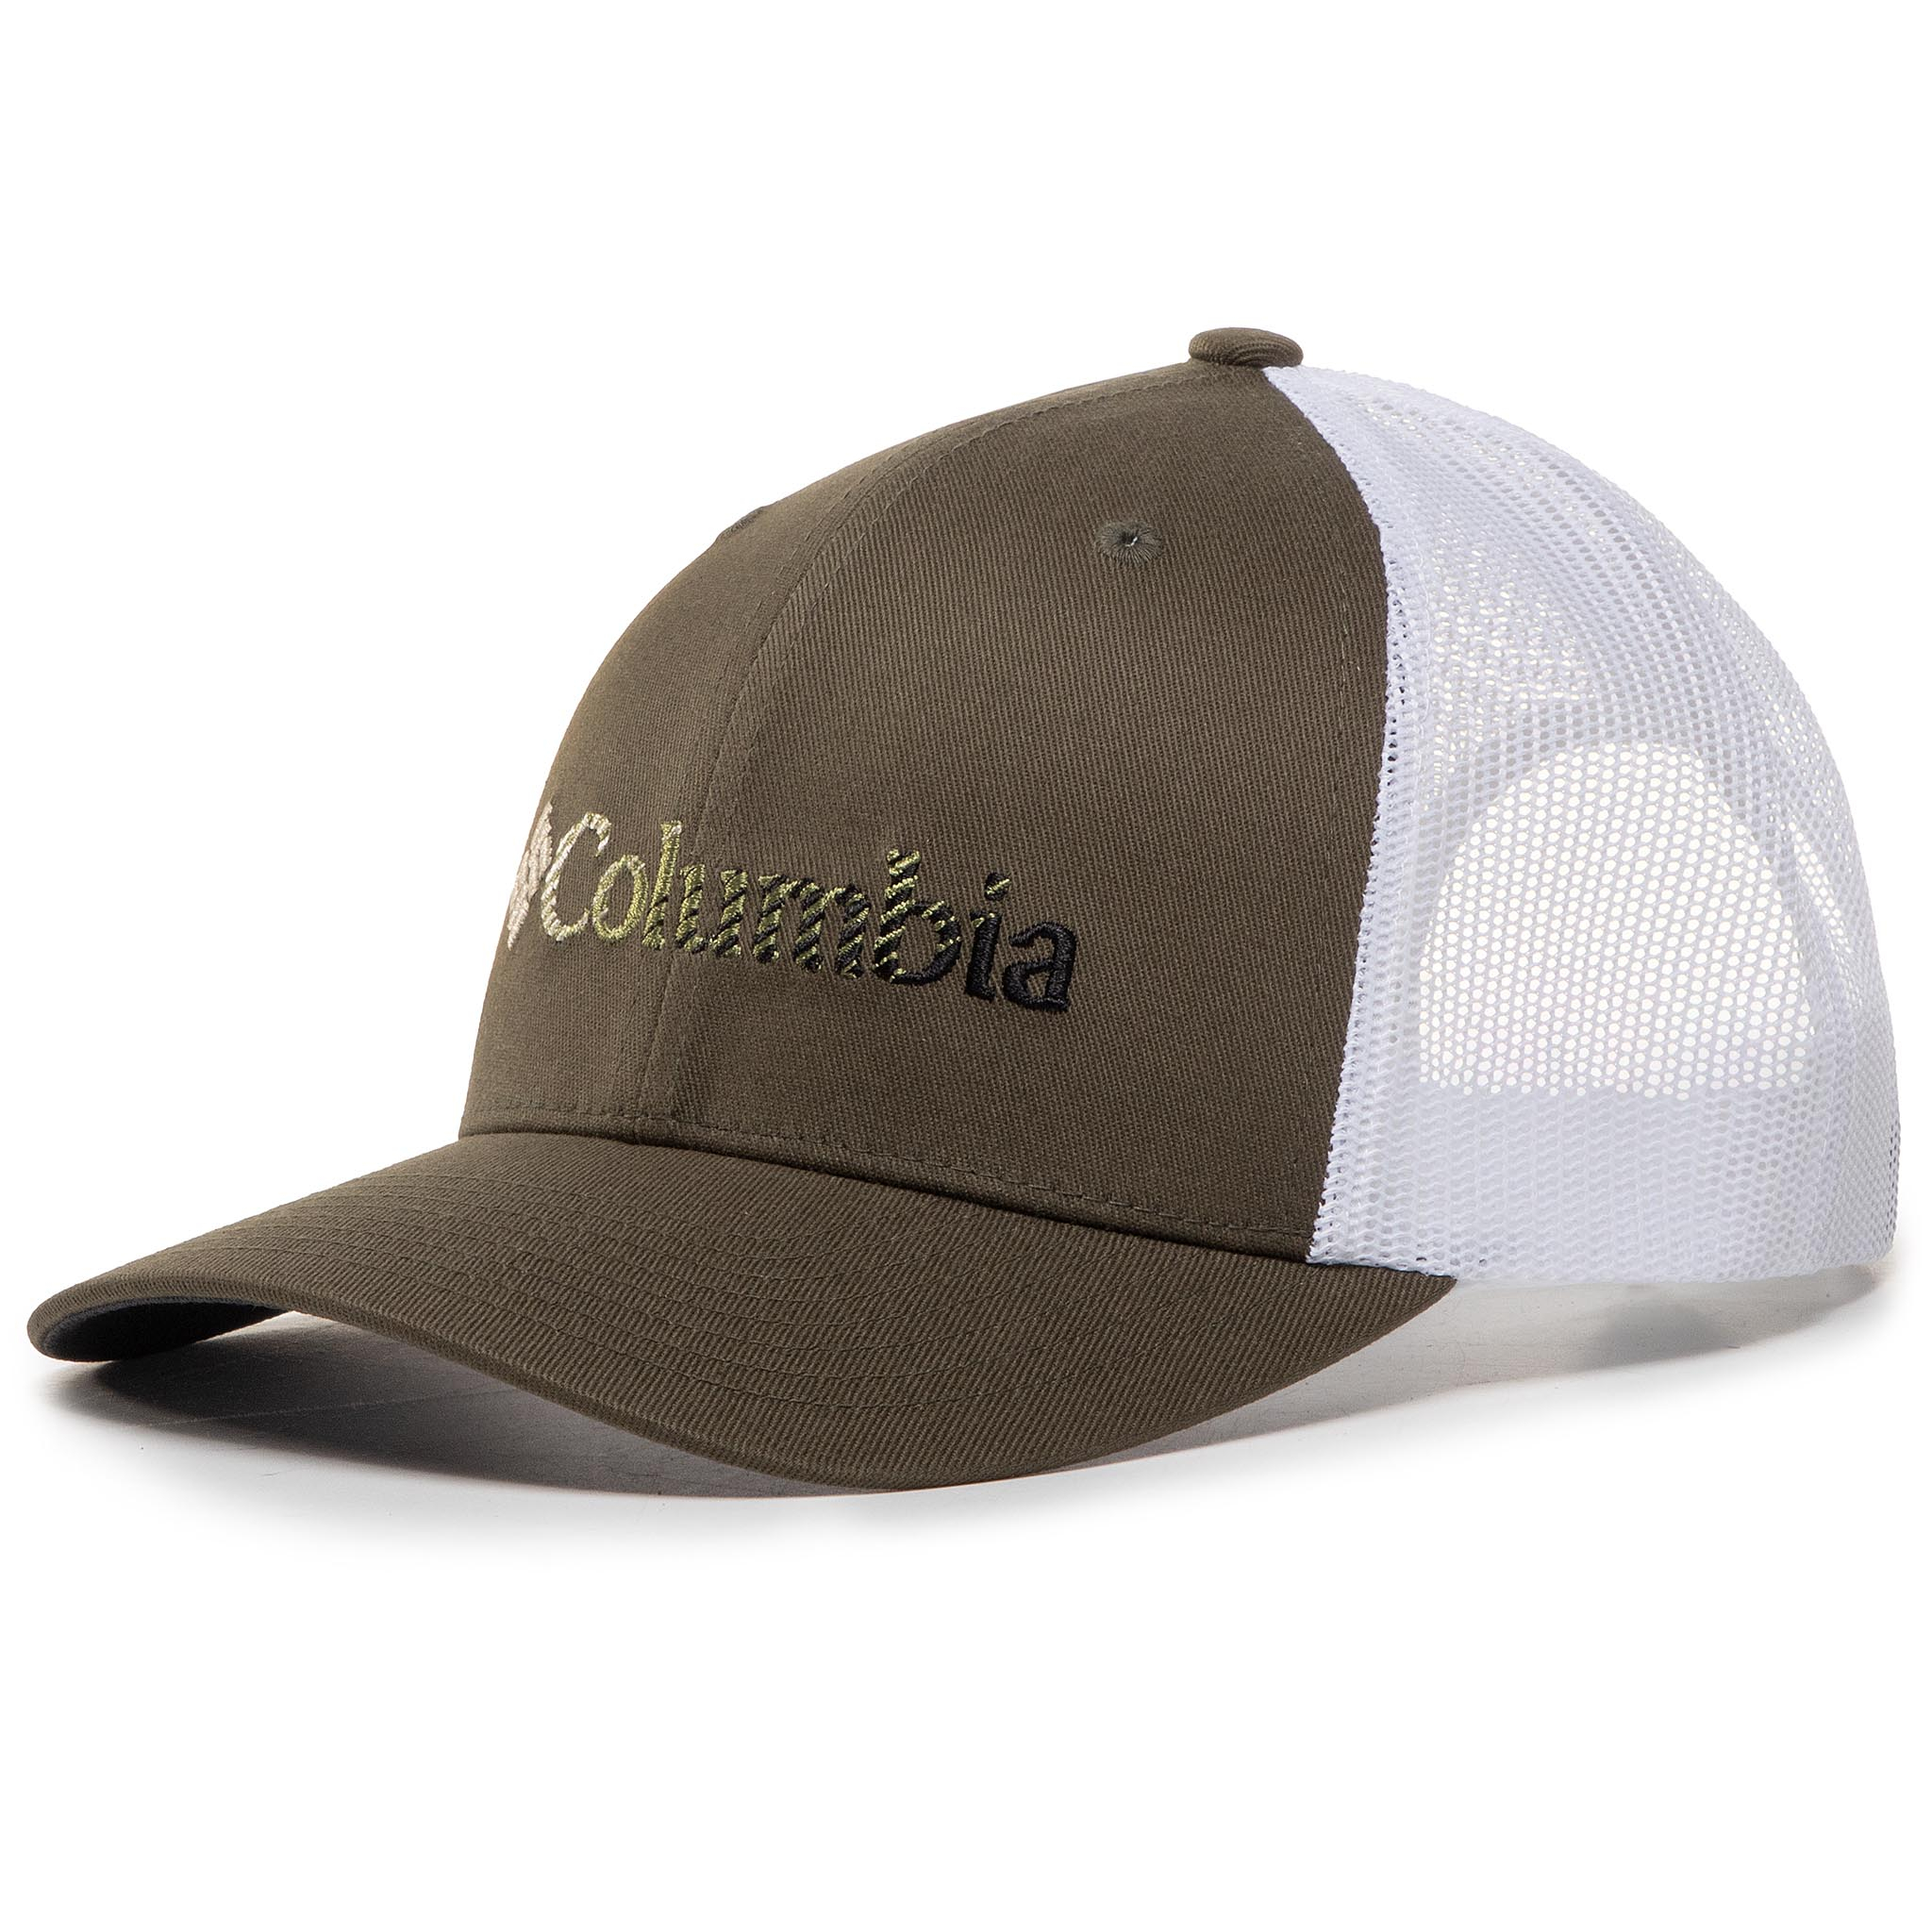 Șapcă COLUMBIA - Mesh Snap Back Hat 1652541327 New Olive/White 327